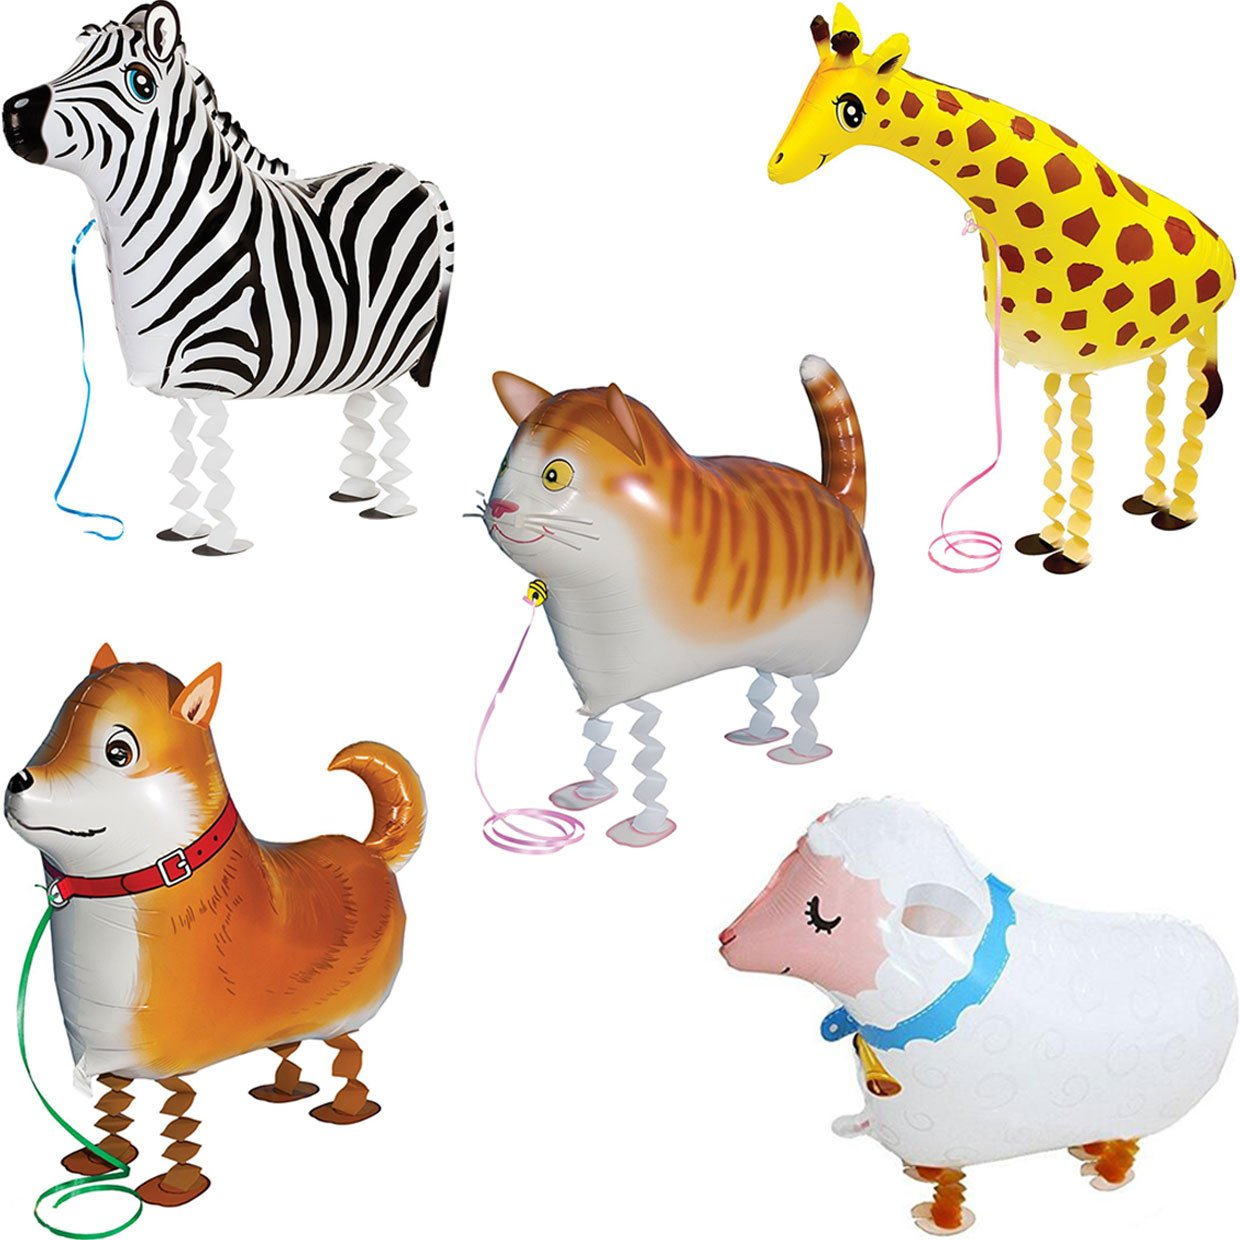 5pcs Kids Animals Balloons Party Favors for Kids Gifts Toys Walking Pet Party Decoration group-E